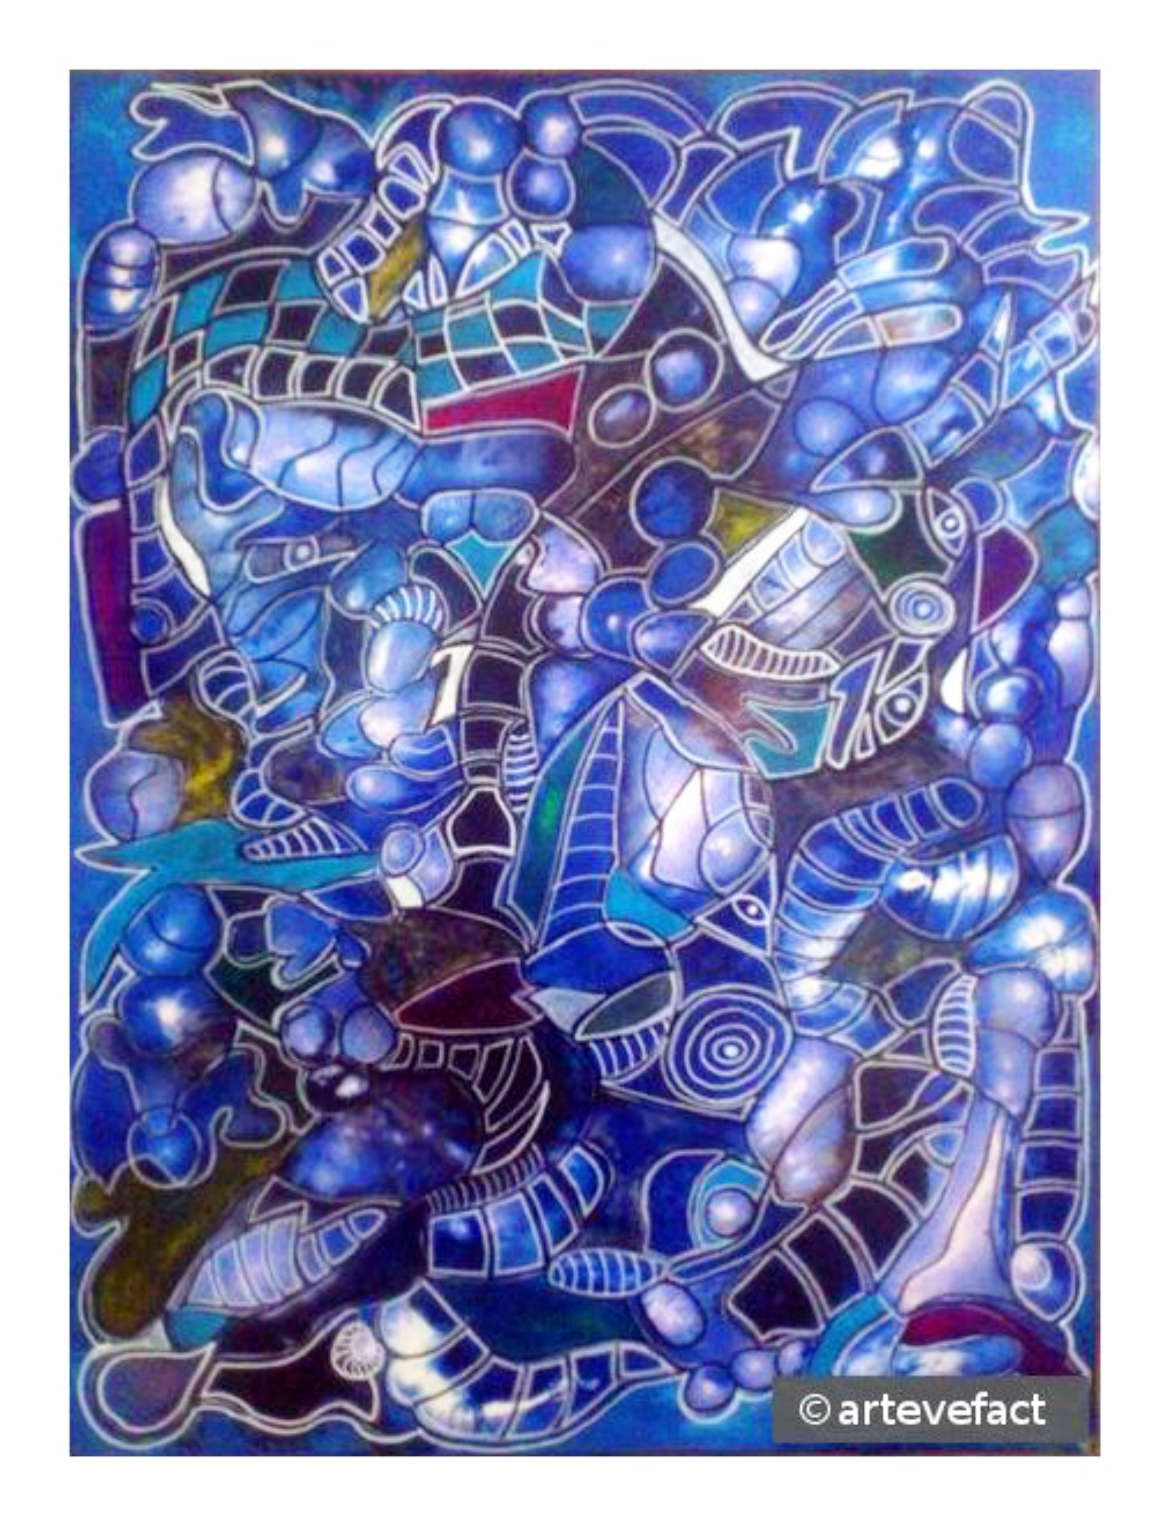 The Blue Wizzard, mixed media on canvas, 60 x 80cm, 2016